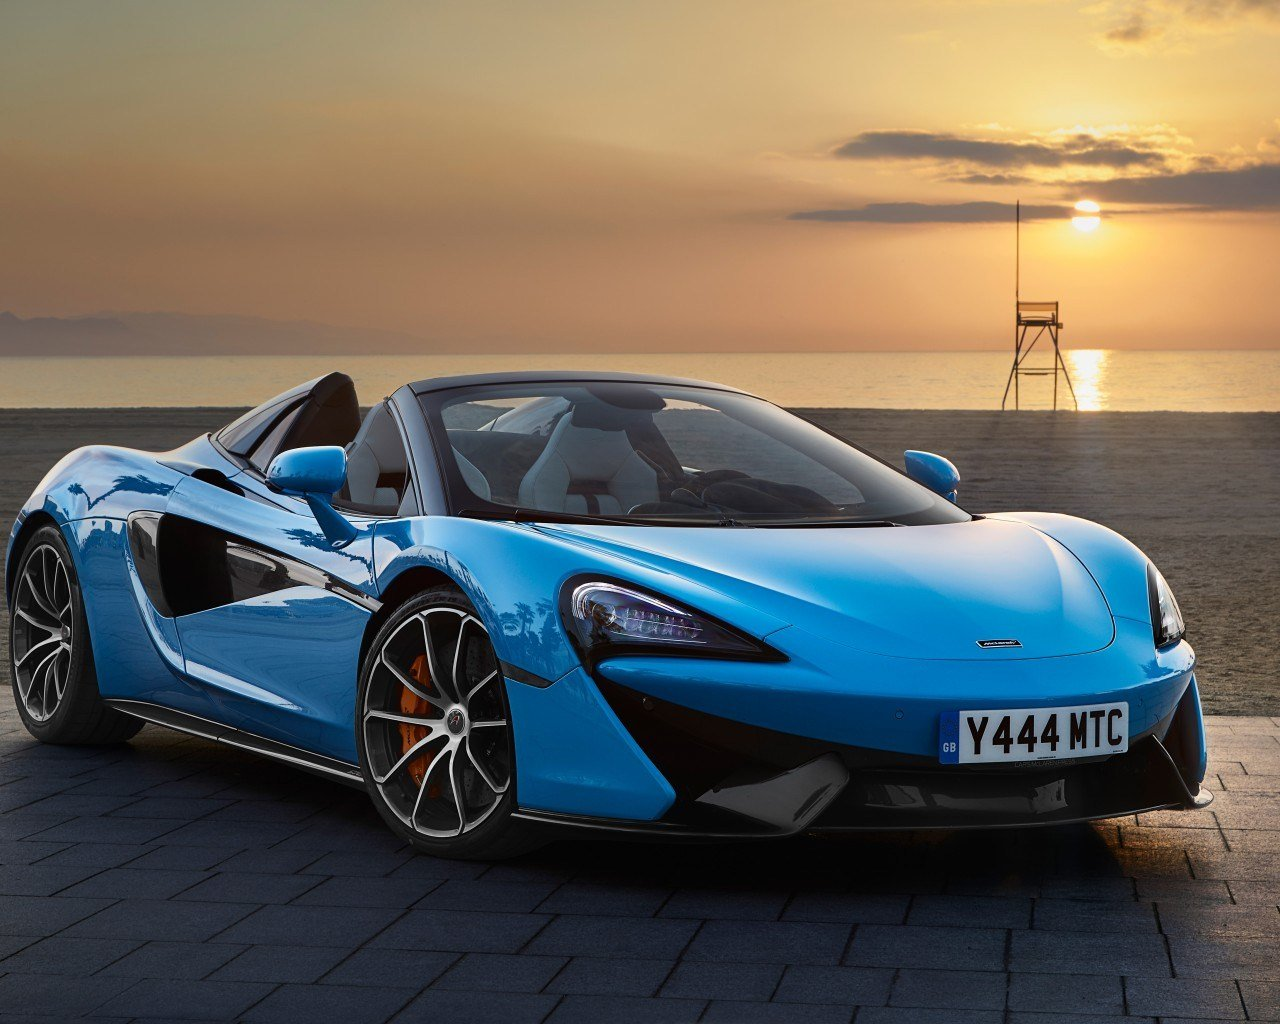 Latest Wallpaper Mclaren 570S Spider 2018 Hd 4K Automotive Free Download